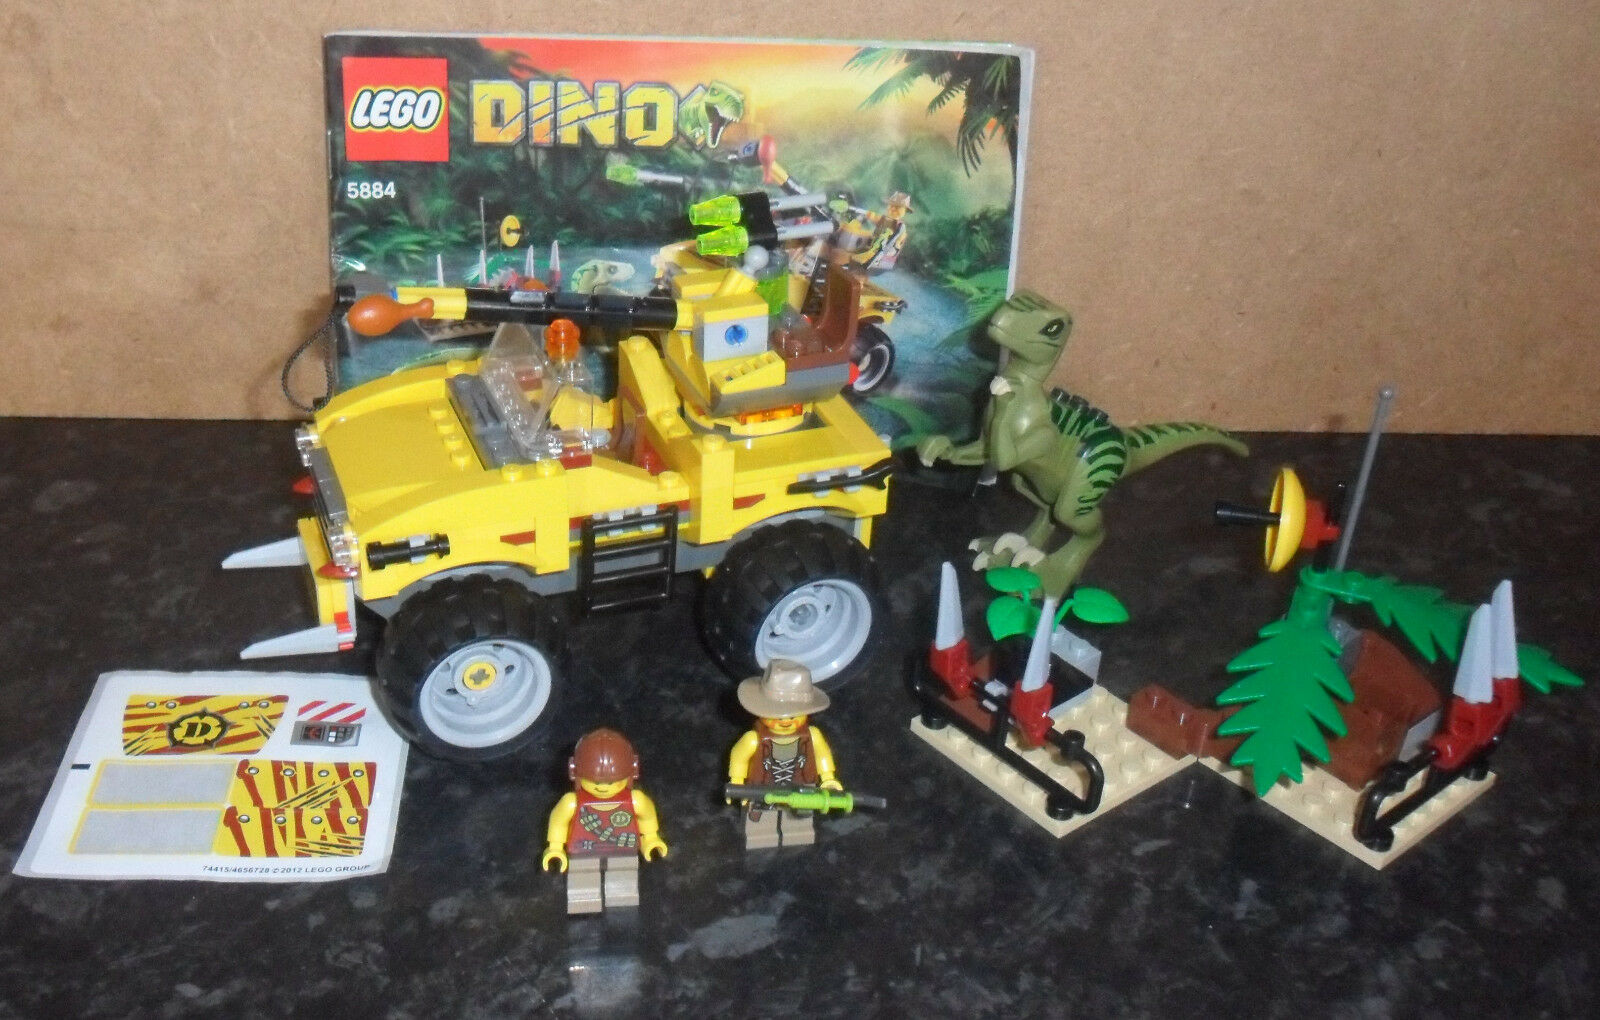 Lego Dino 5884  Raptor Chase,Instruction Book -No Box .  Very nice condition